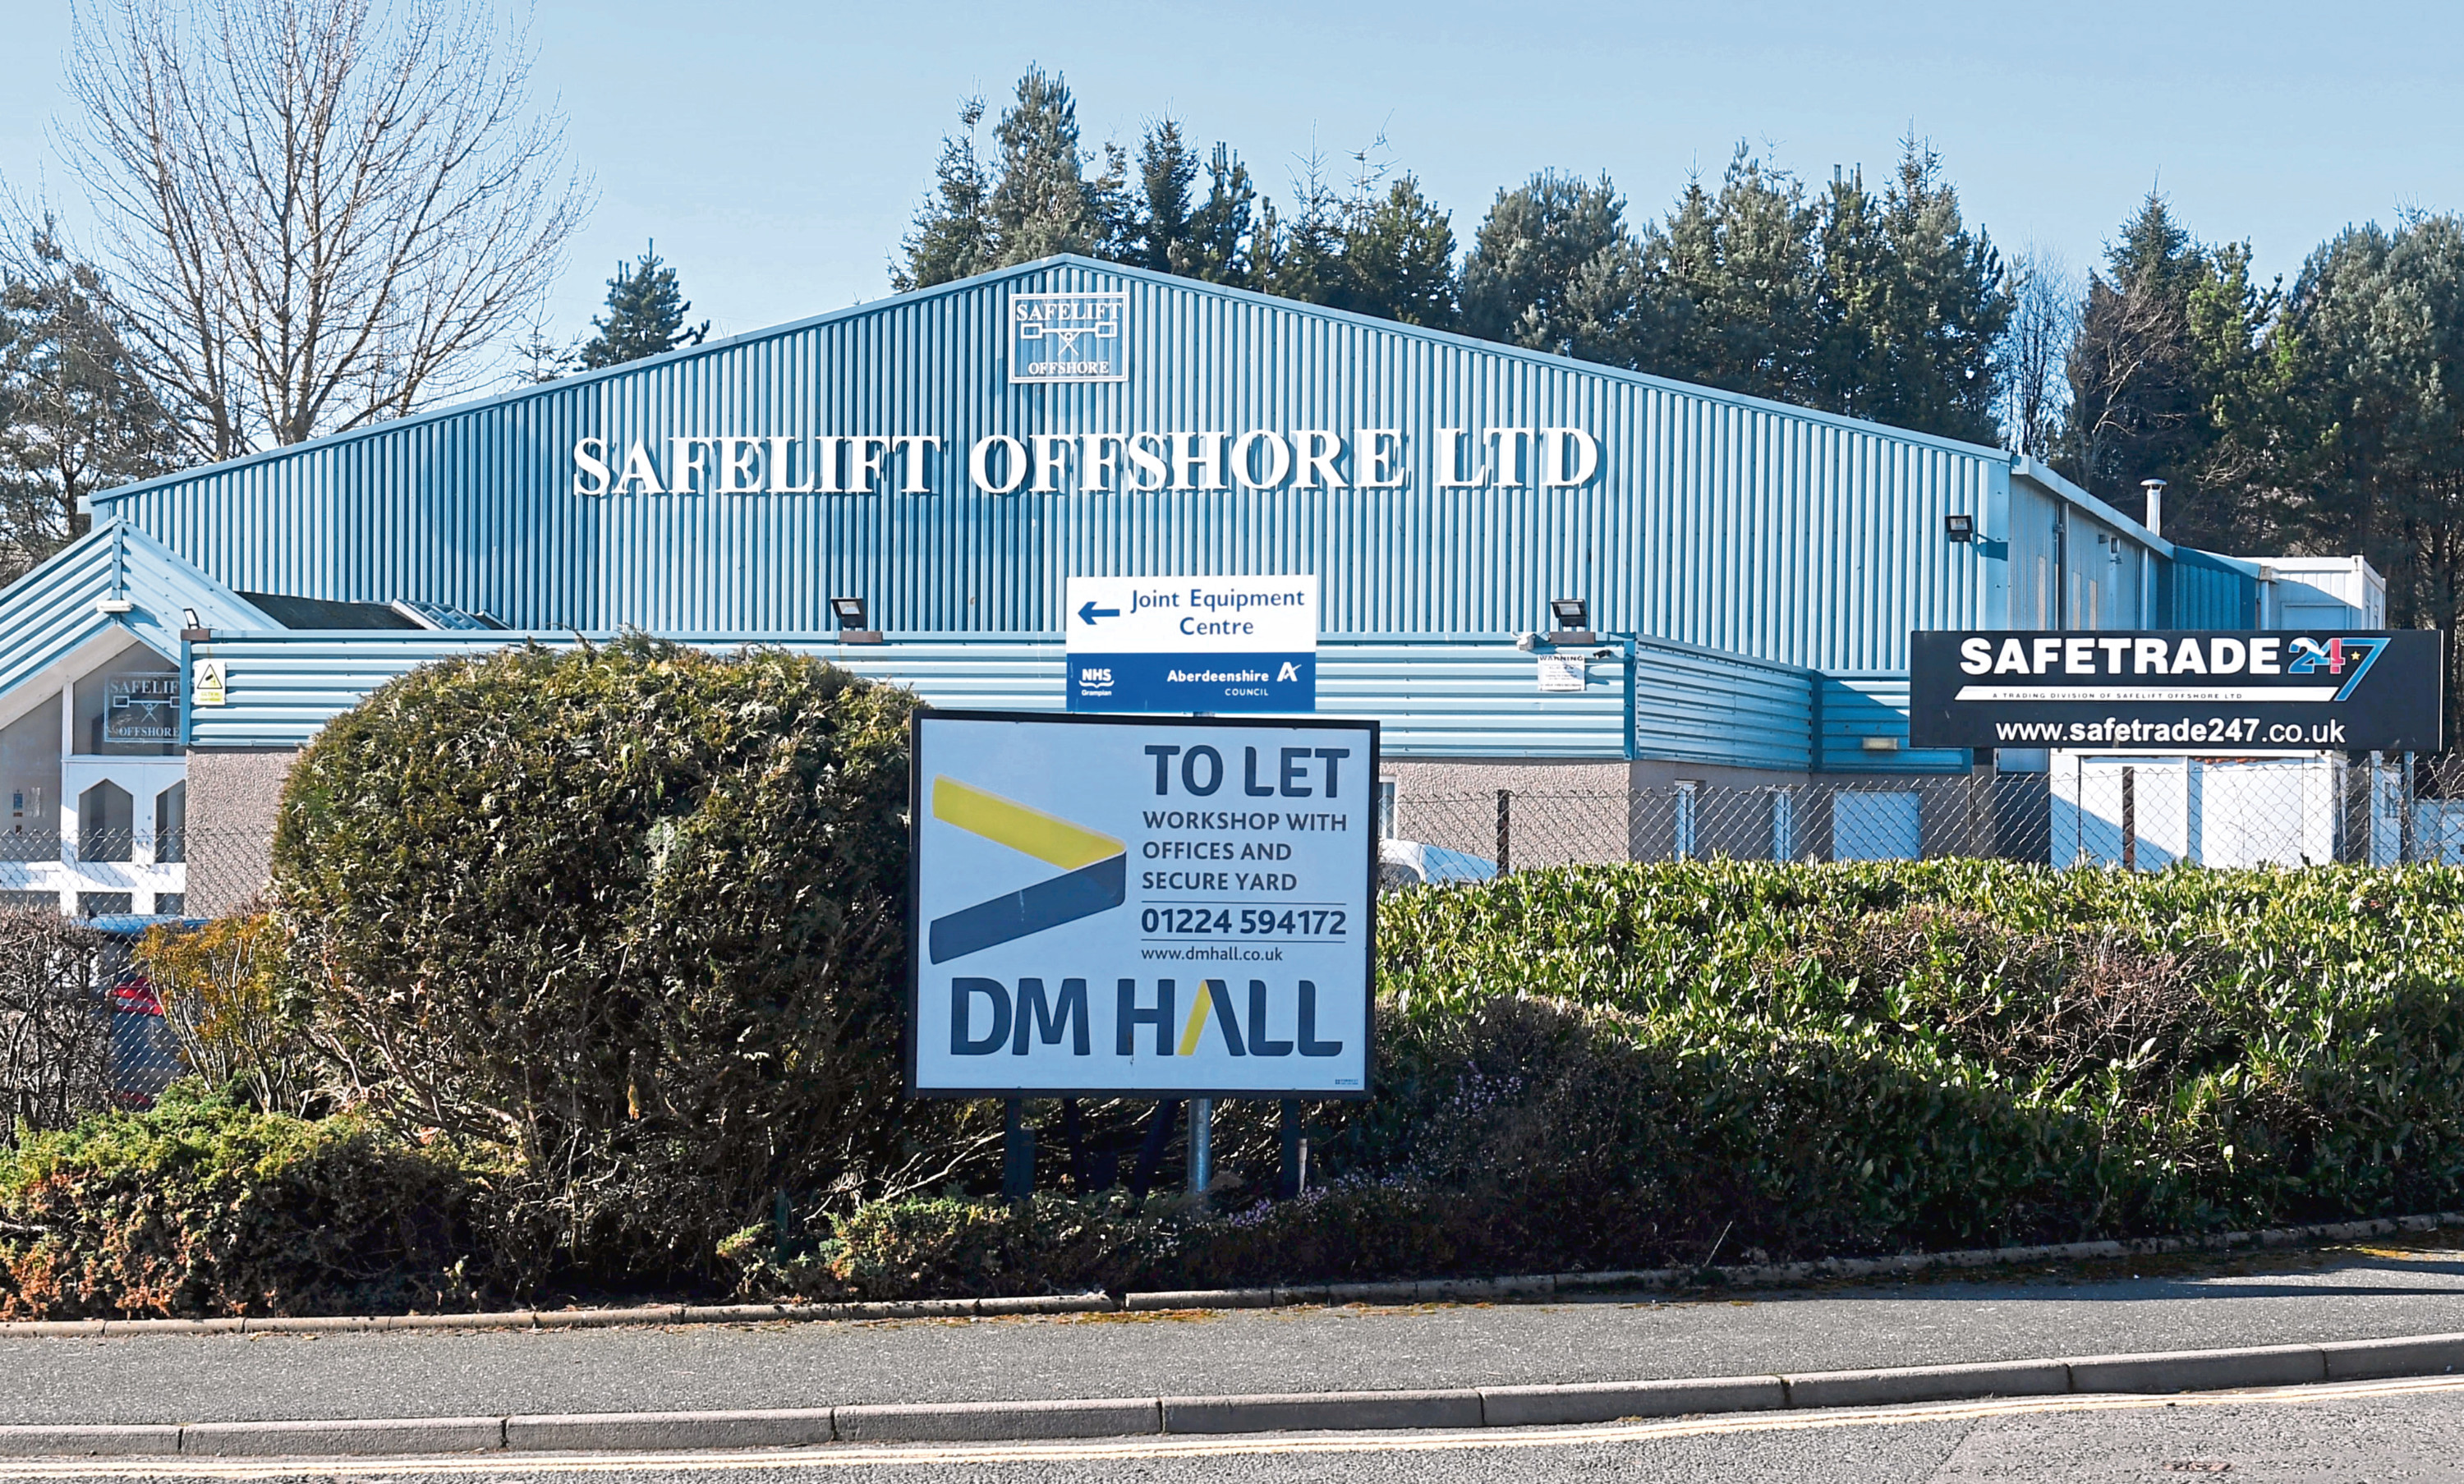 A gym plans to move into a former offshore building